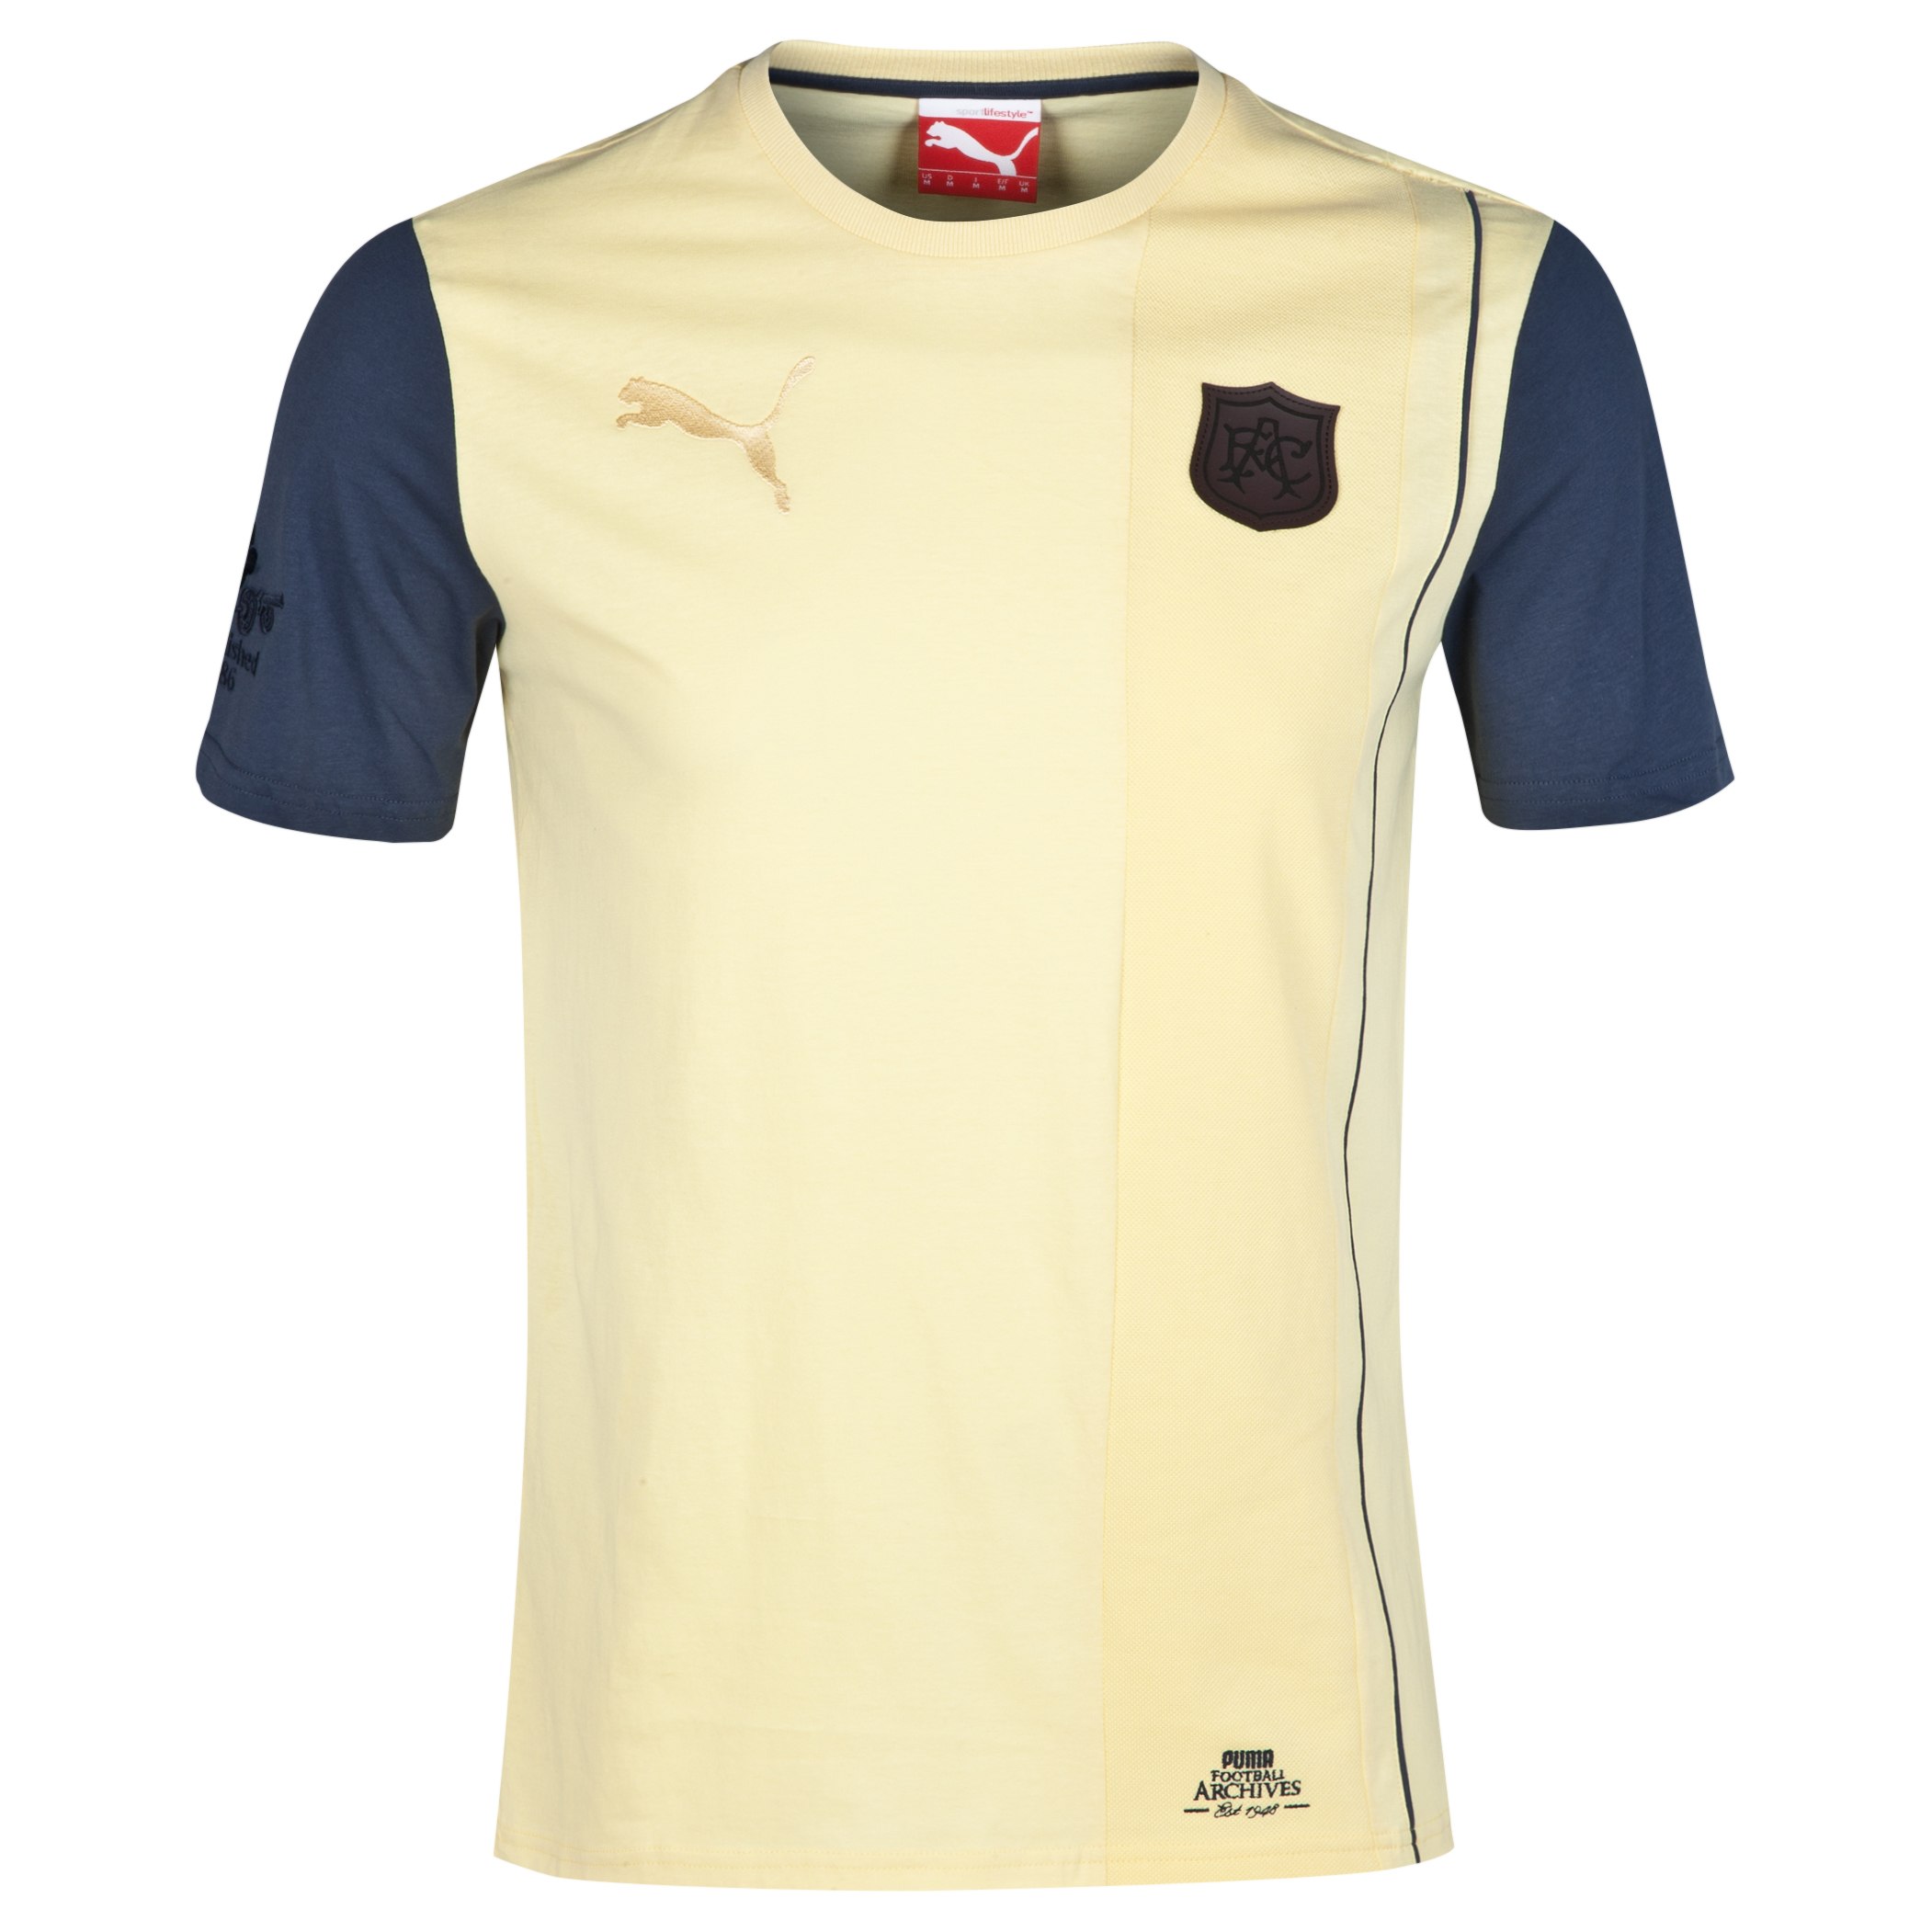 Arsenal Archives Ringer TShirt